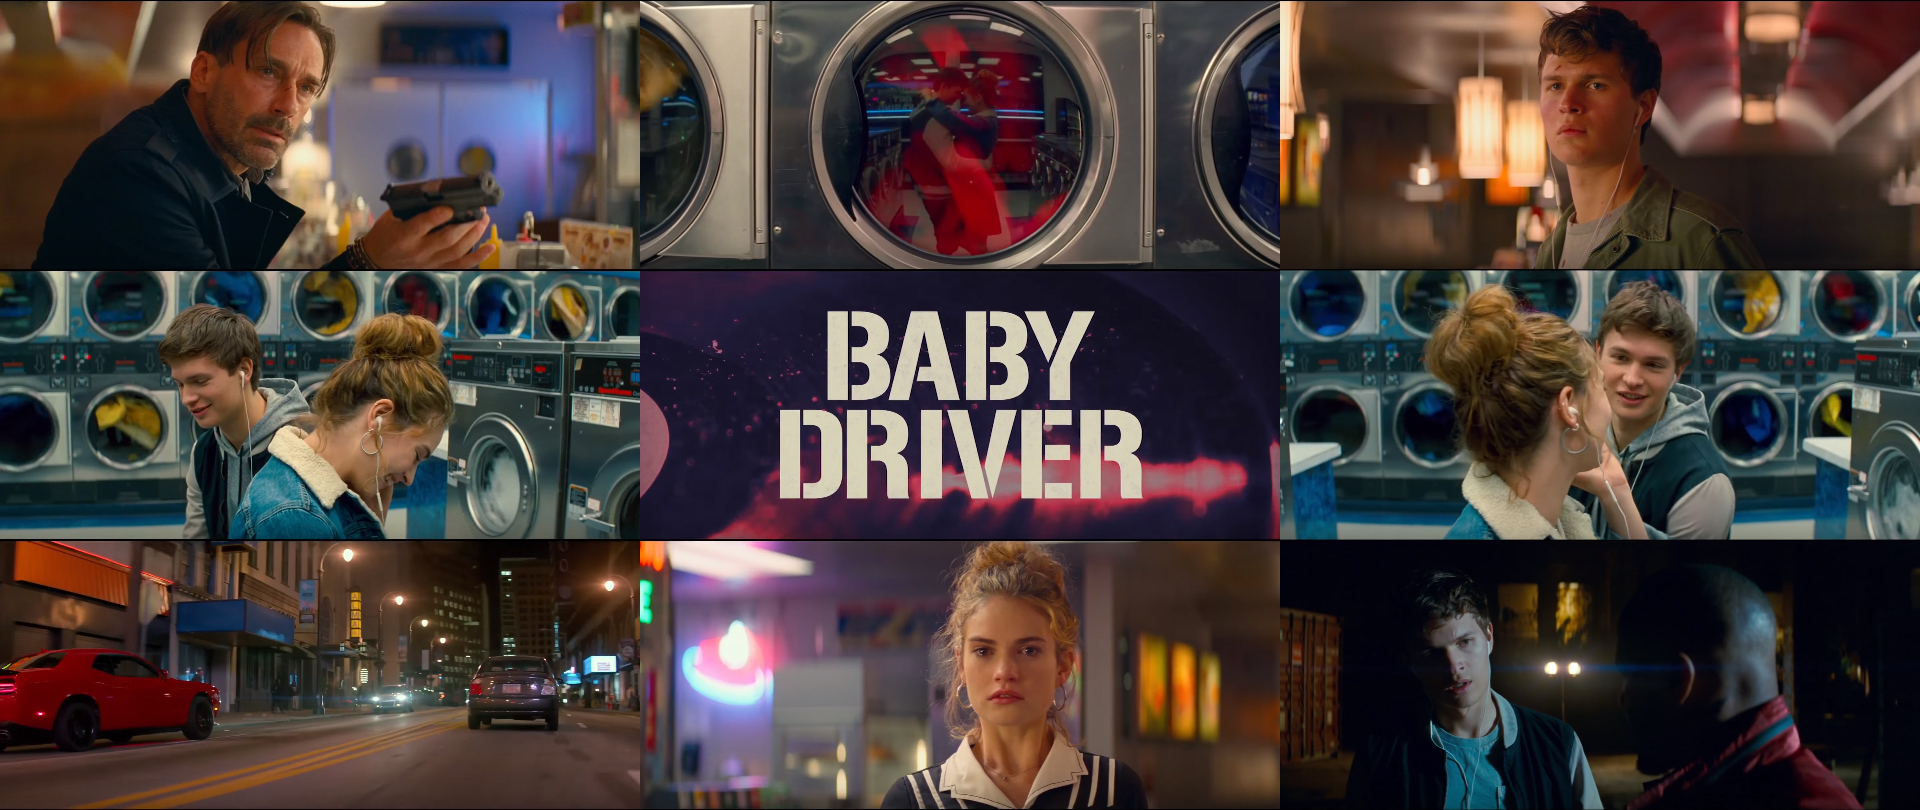 How Edgar Wright uses colors blue, red, and yellow in Baby Driver